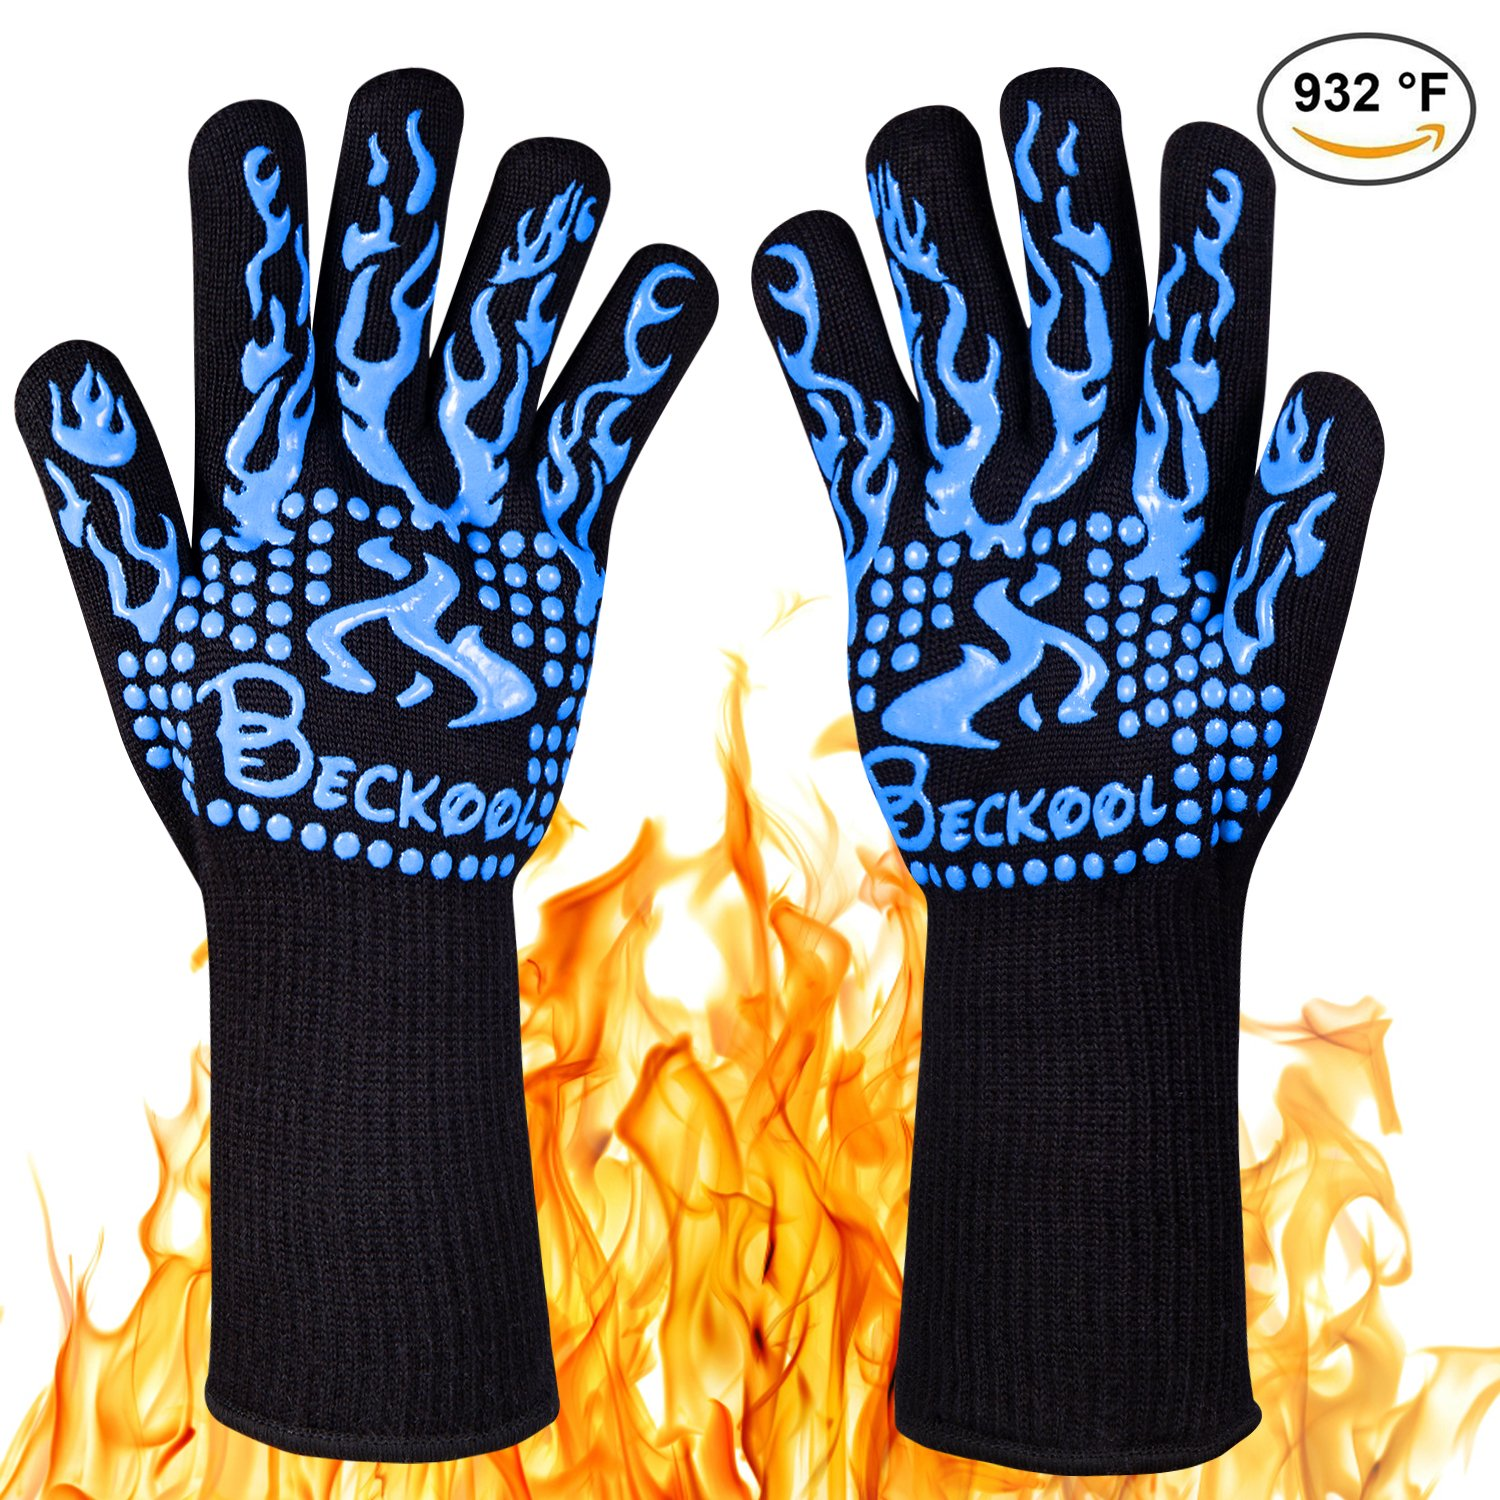 Beckool Heat Resistant Oven Gloves, Grill Gloves BBQ Accessories Oven Mittswith 932℉ Heat Resistance for Cooking, Grilling, Baking, Barbecue-Blue by Beckool